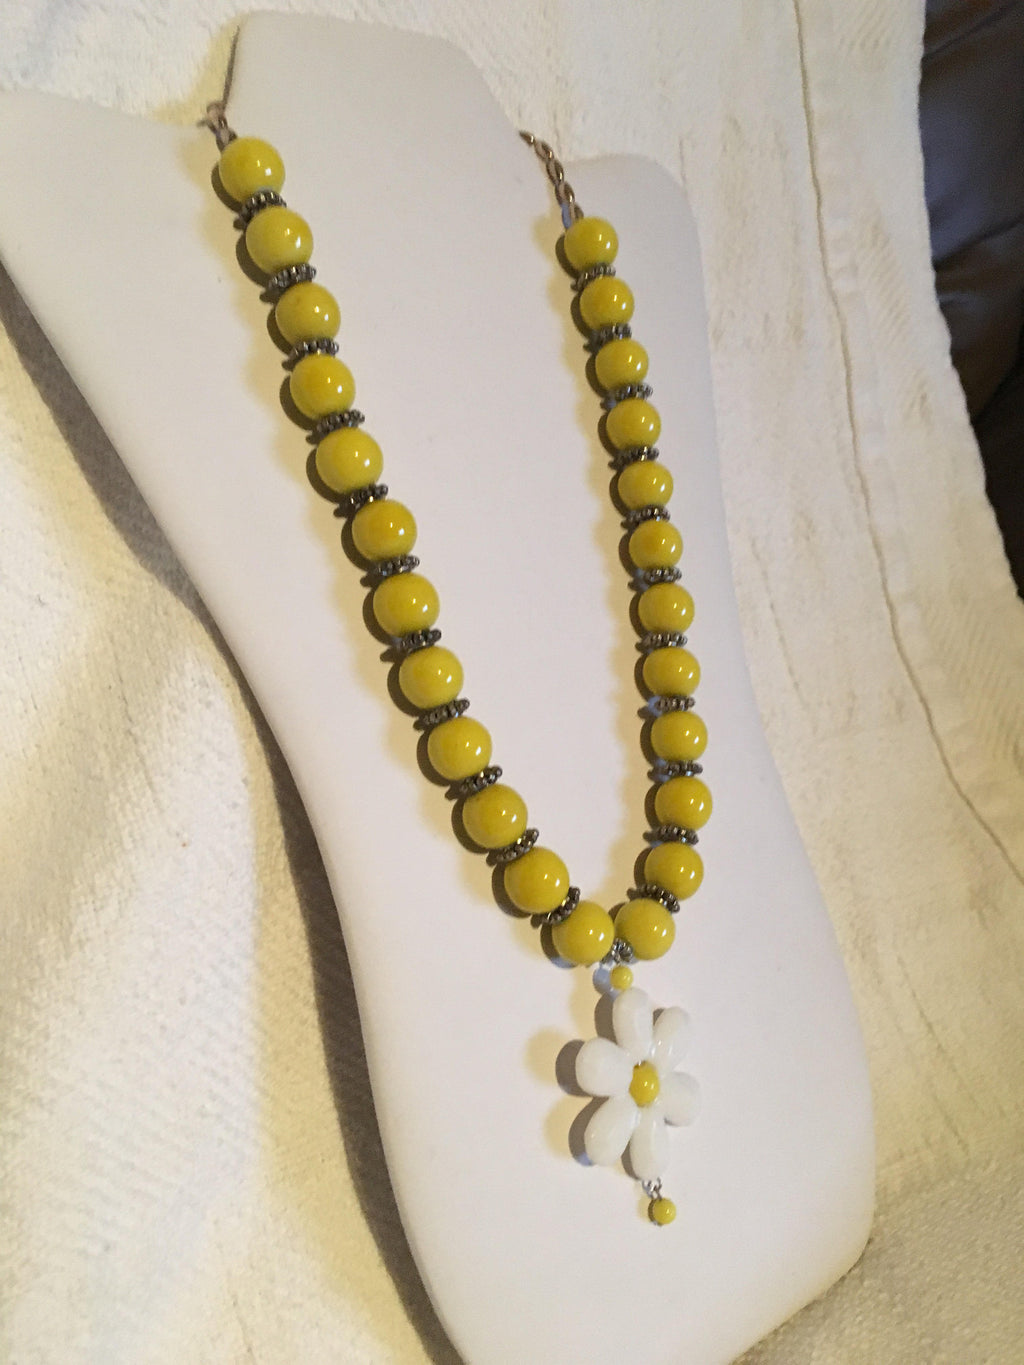 Bright Yellow Beaded Necklace with Flower Focal Point